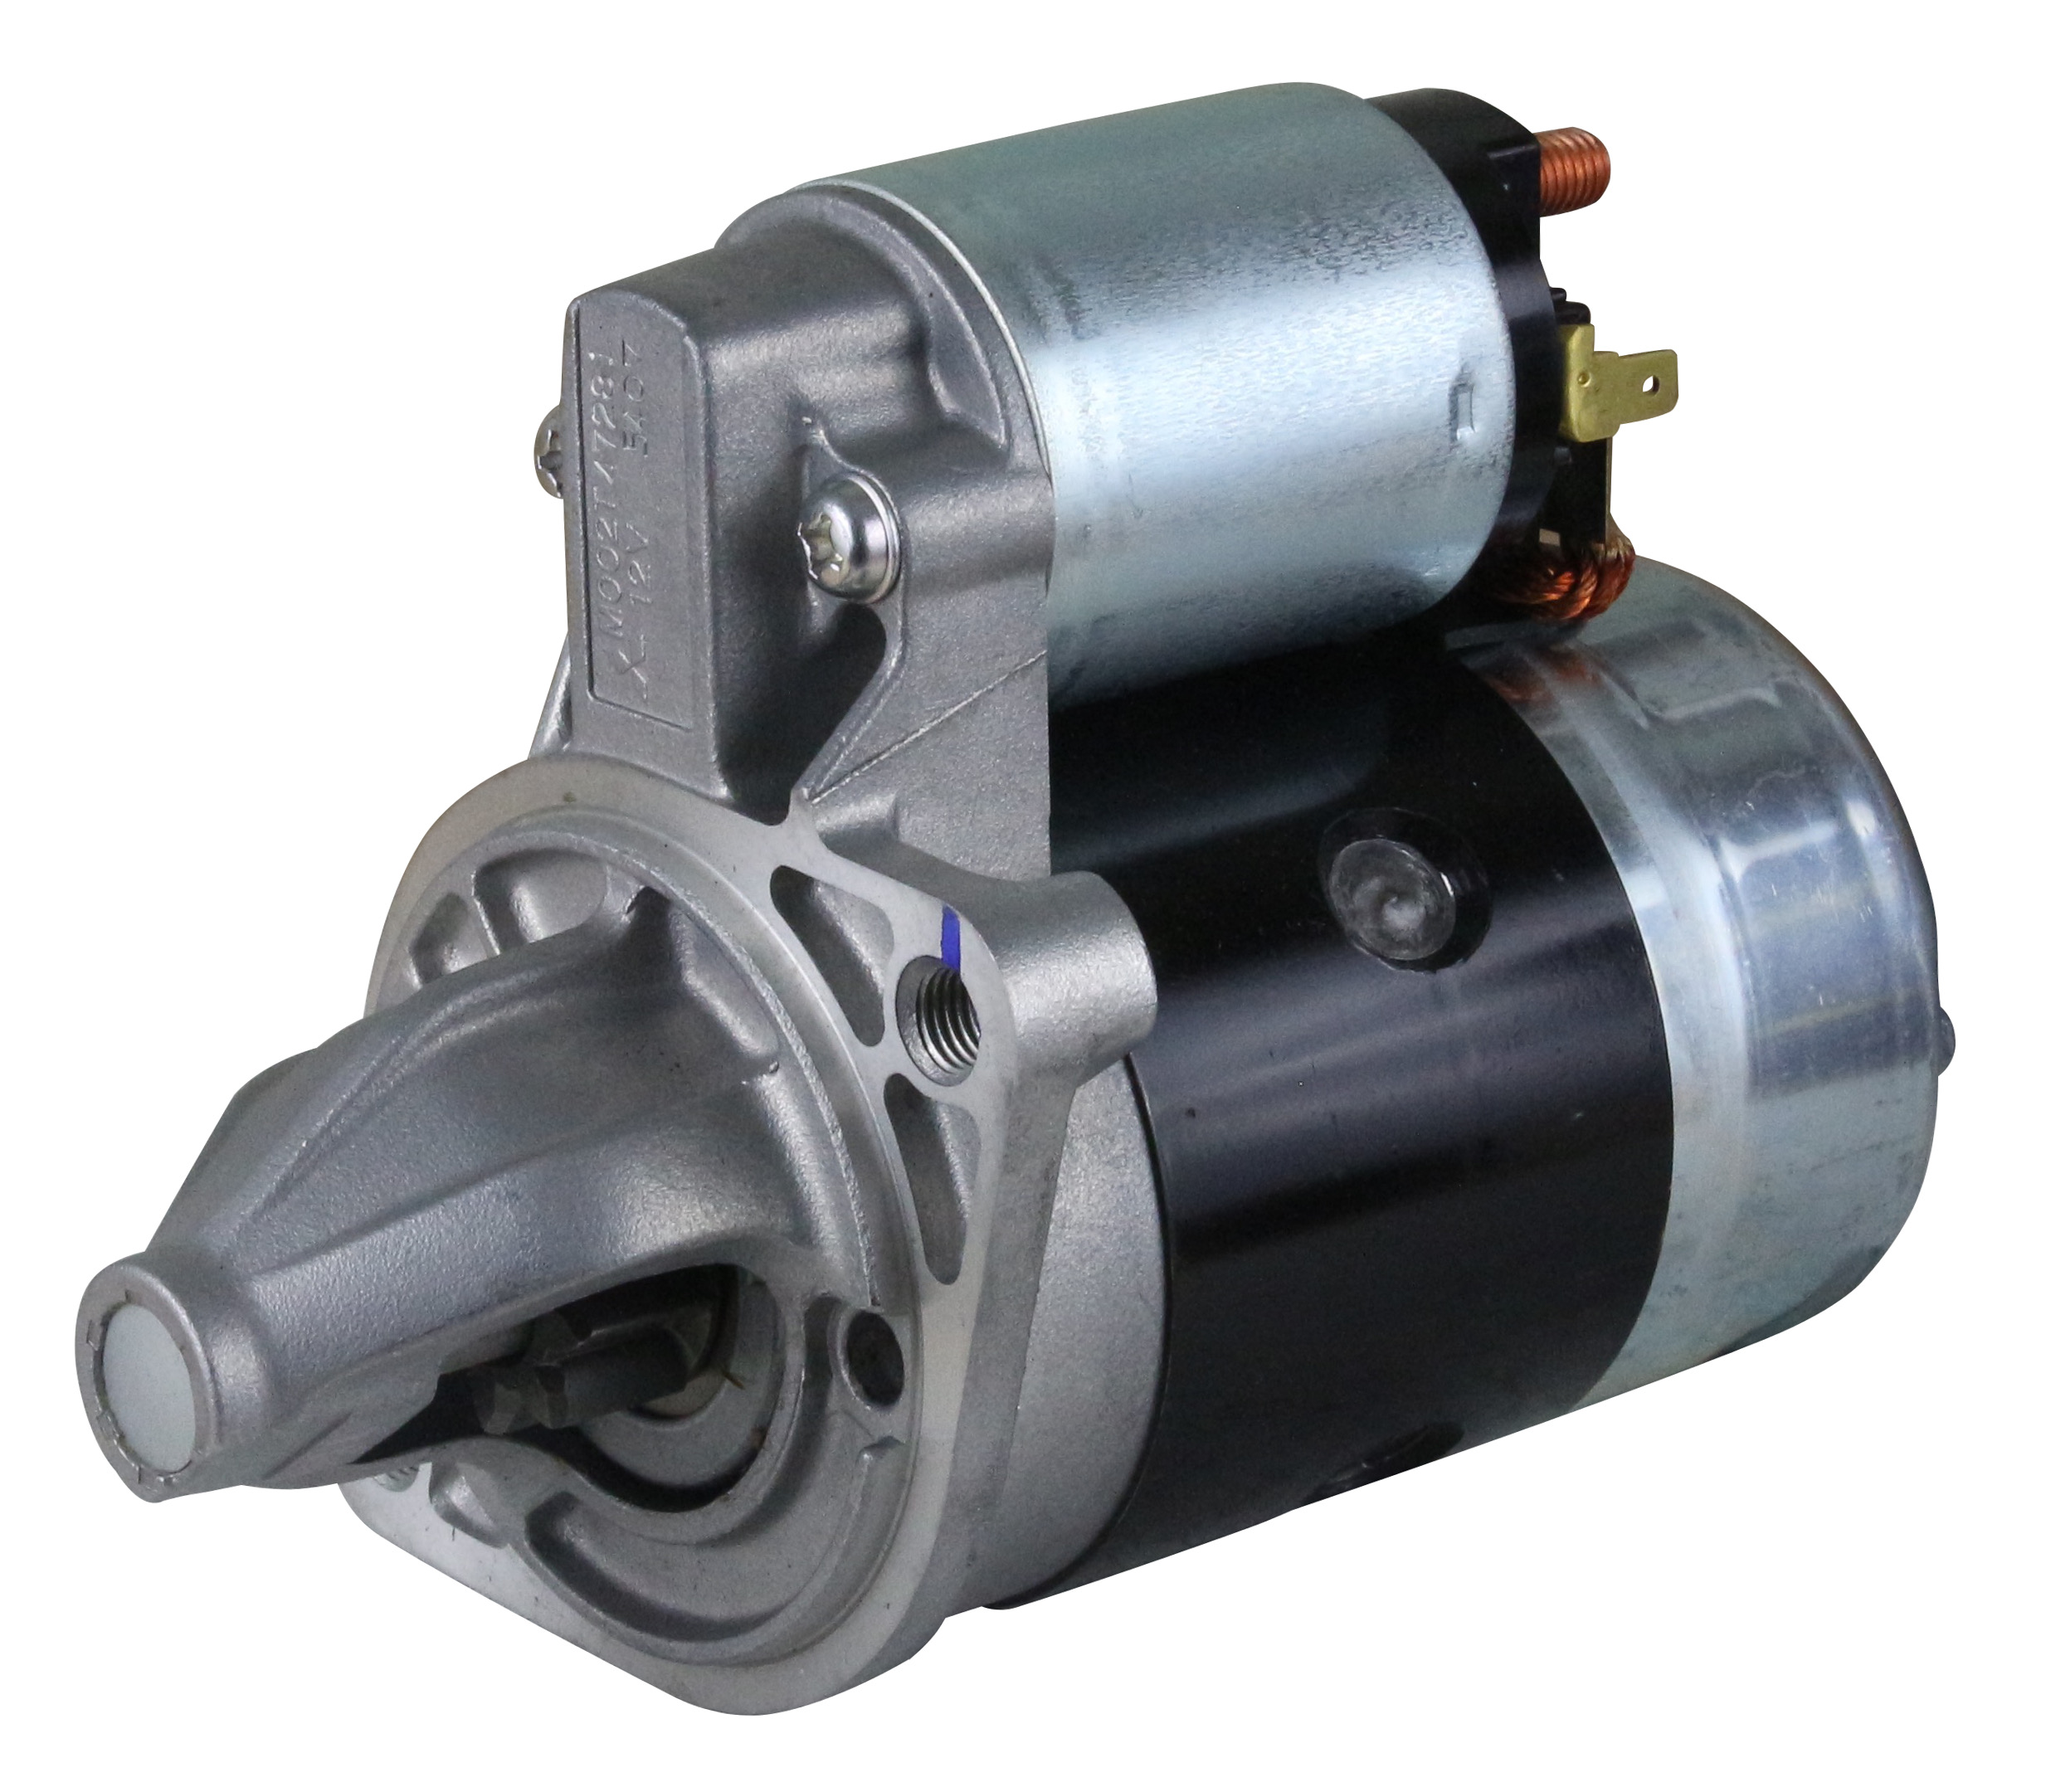 oem starter motor volvo penta md2020c md2020d md2030a. Black Bedroom Furniture Sets. Home Design Ideas